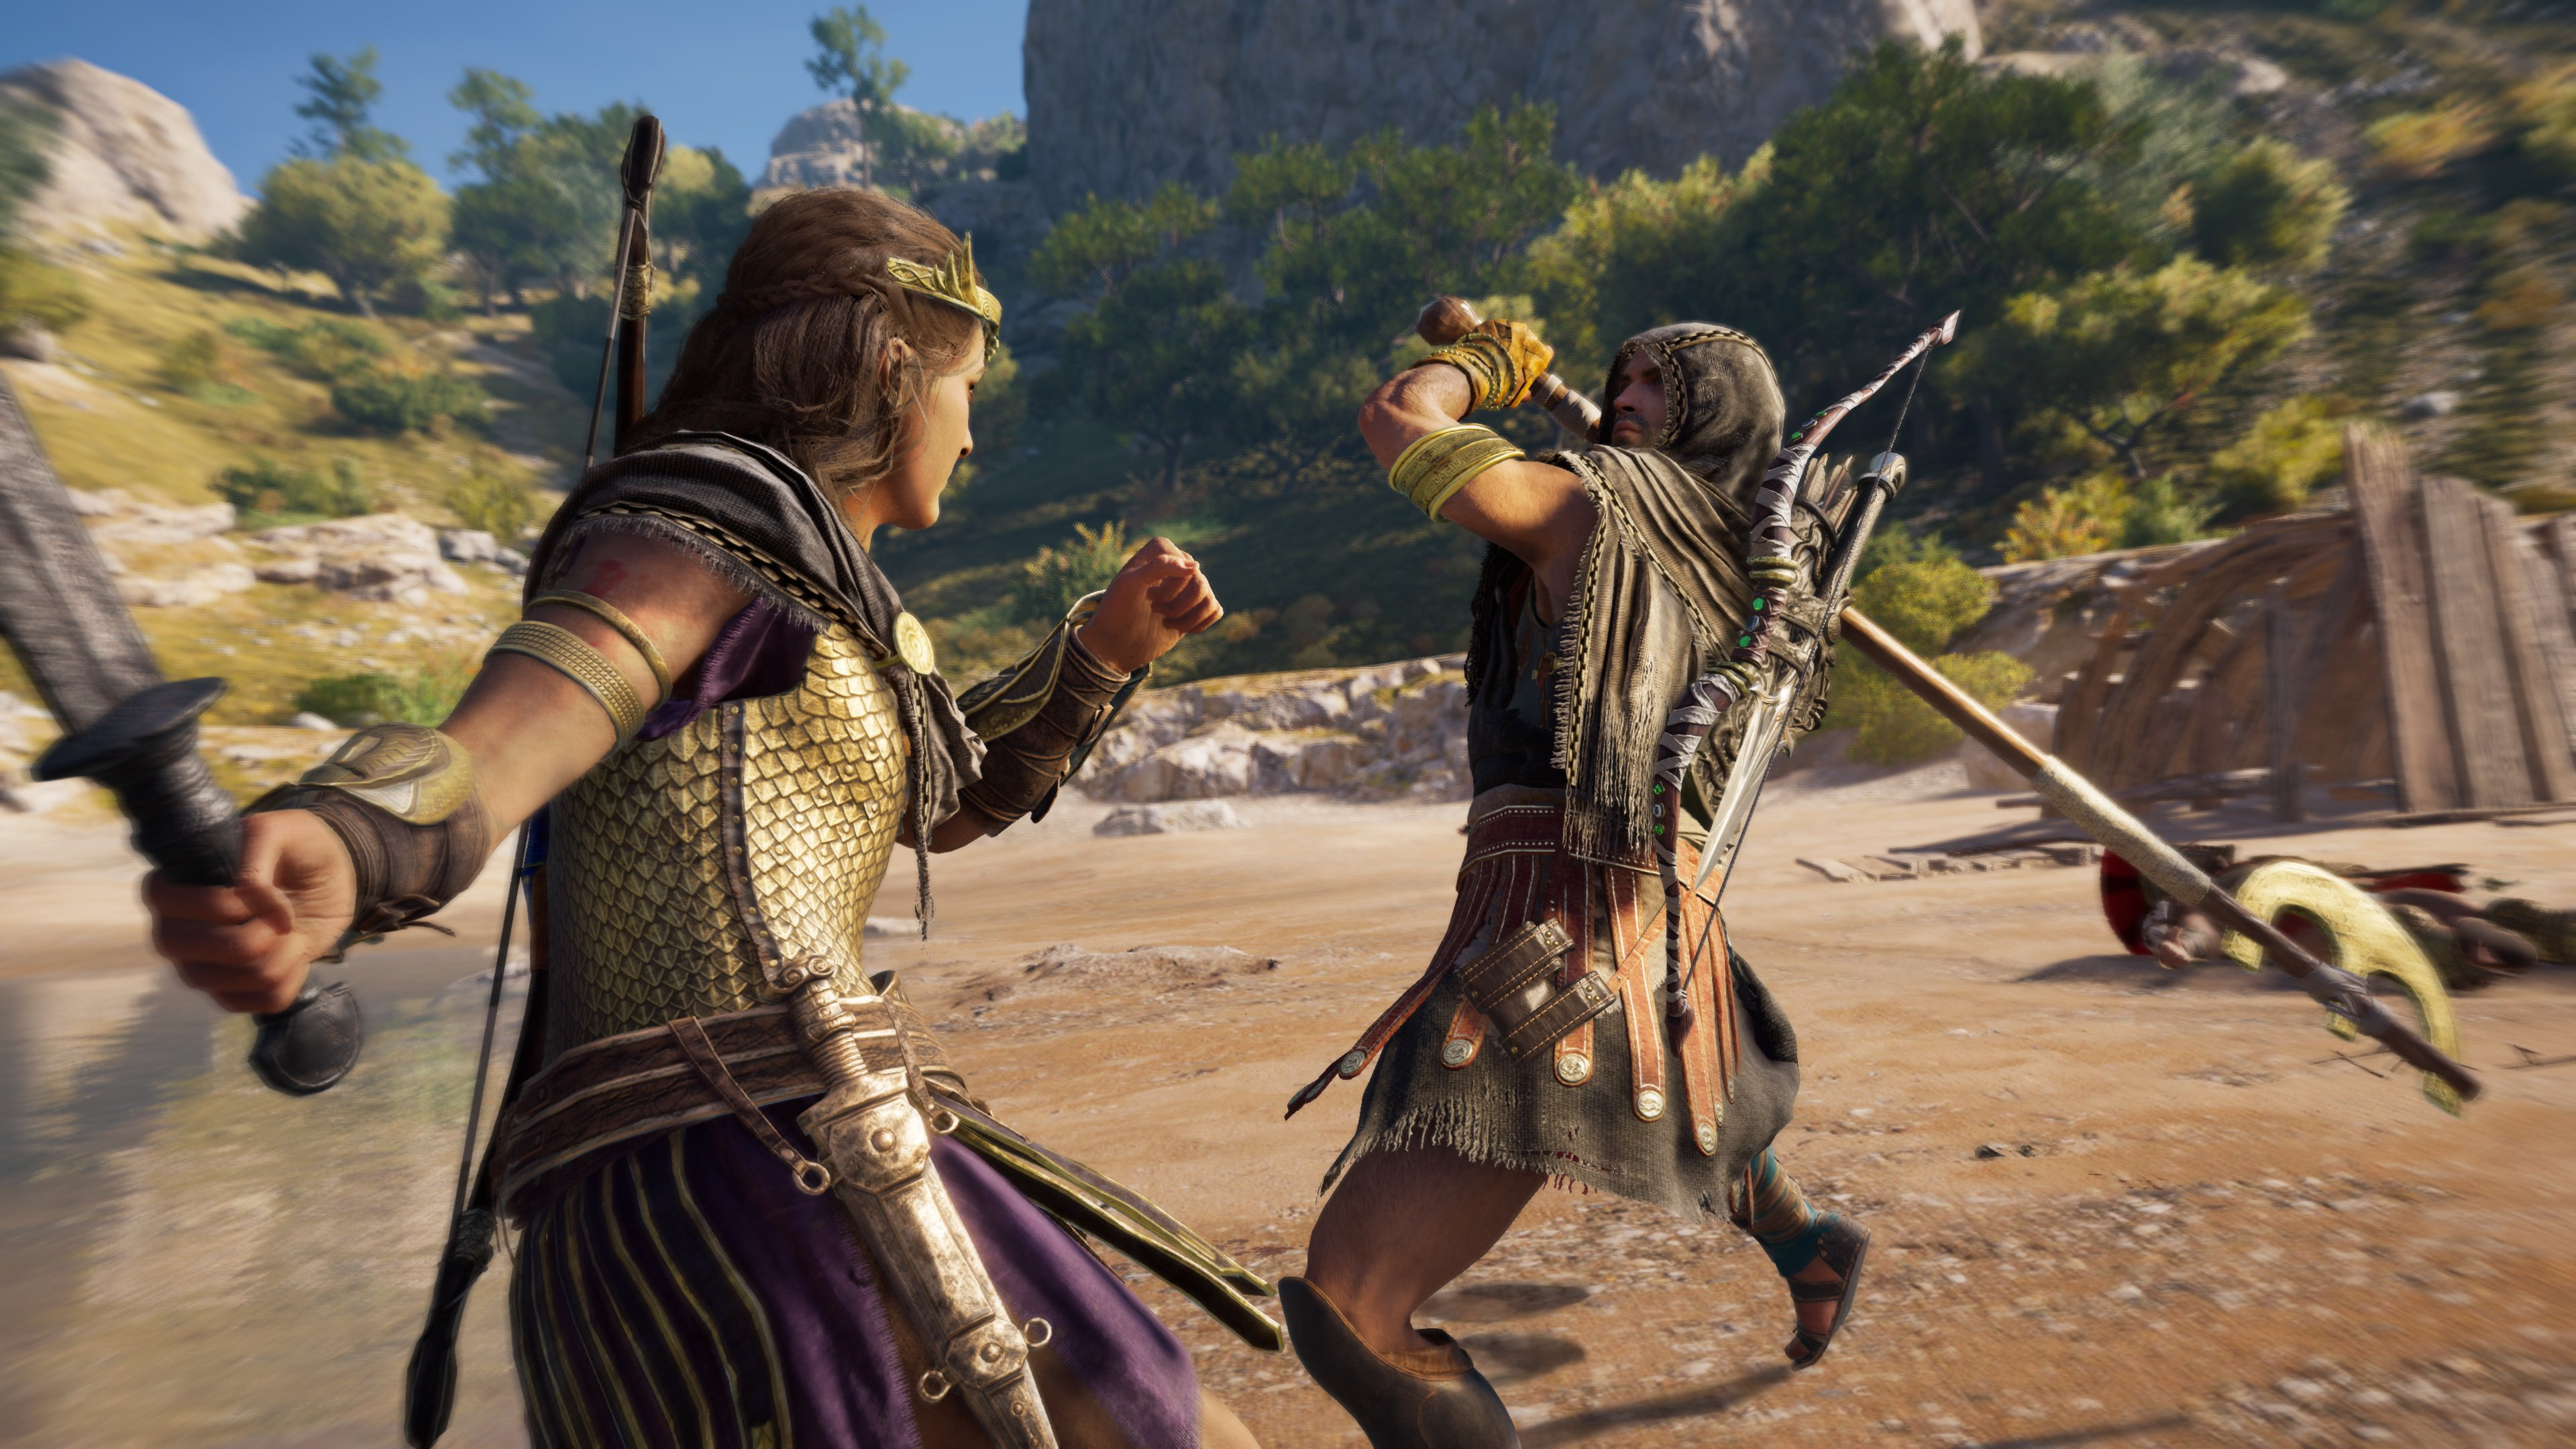 Assassin's Creed Odyssey Patch 1.13 Out Now on PS4 - Push ...